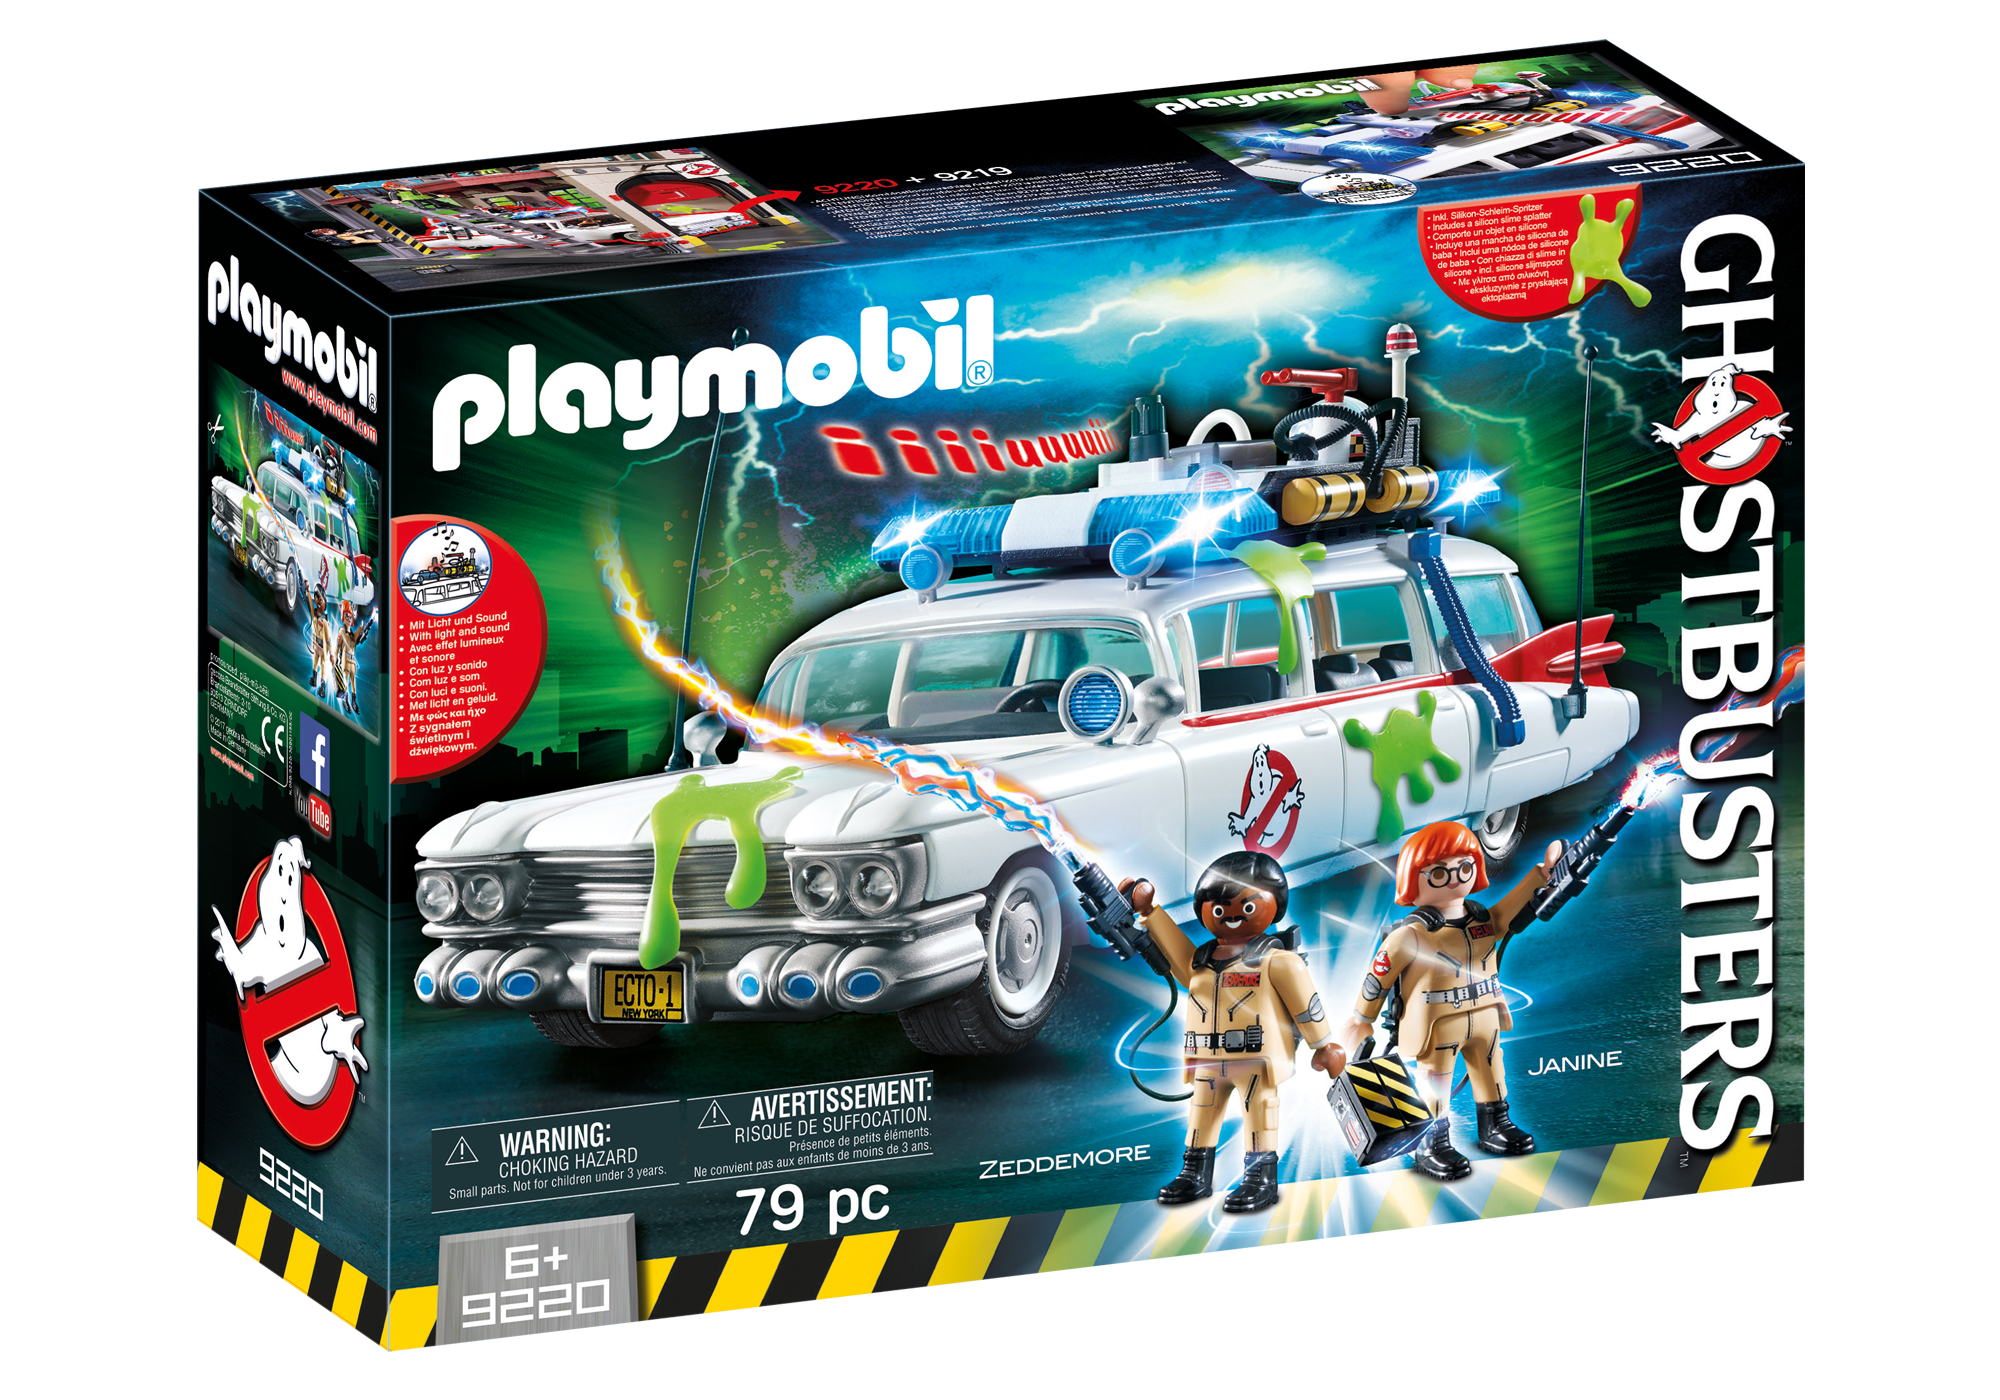 http://media.playmobil.com/i/playmobil/9220_product_box_front/Ghostbusters Ecto-1